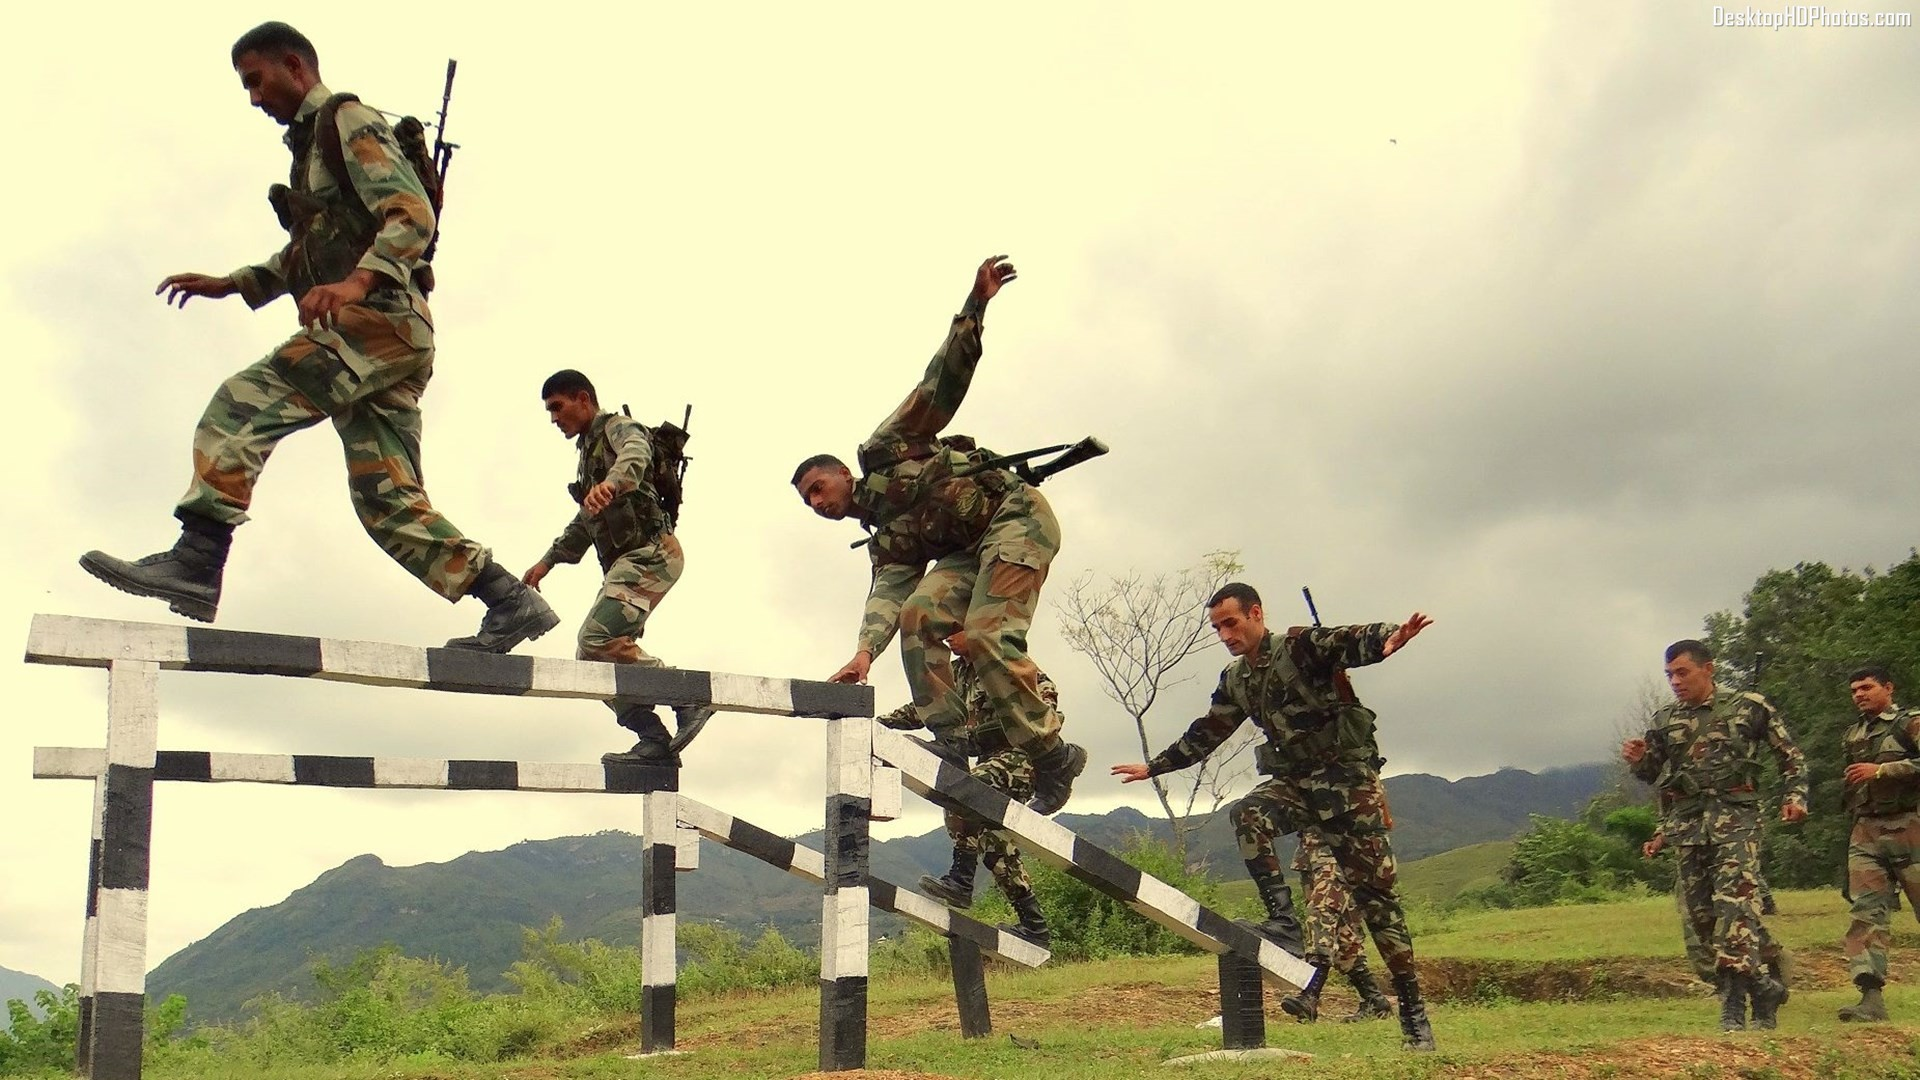 Army Wallpaper Indian Military Training 1920x1080 Download Hd Wallpaper Wallpapertip